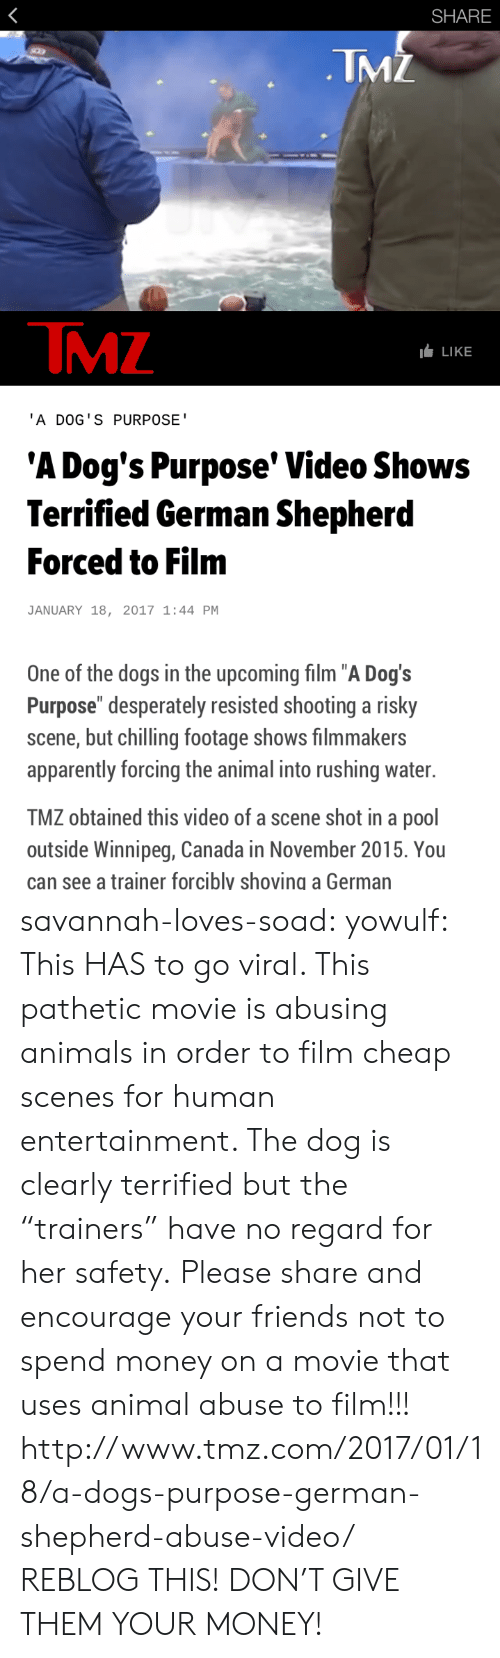 """Animal Abuse: SHARE  TMZ  TMZ  LLIKE  'A DOG'S PURPOSE  'A Dog's Purpose' Video Shows  Terrified German Shepherd  Forced to Film  JANUARY 18, 2017 1:44 PM  One of the dogs in the upcoming film """"A Dog's  Purpose"""" desperately resisted shooting a risky  scene, but chilling footage shows filmmakers  apparently forcing the animal into rushing water.  TMZ obtained this video of a scene shot in a pool  outside Winnipeg, Canada in November 2015. You  can see a trainer forcibly shoving a German savannah-loves-soad:  yowulf:  This HAS to go viral. This pathetic movie is abusing animals in order to film cheap scenes for human entertainment. The dog is clearly terrified but the """"trainers"""" have no regard for her safety.  Please share and encourage your friends not to spend money on a movie that uses animal abuse to film!!!  http://www.tmz.com/2017/01/18/a-dogs-purpose-german-shepherd-abuse-video/   REBLOG THIS! DON'T GIVE THEM YOUR MONEY!"""